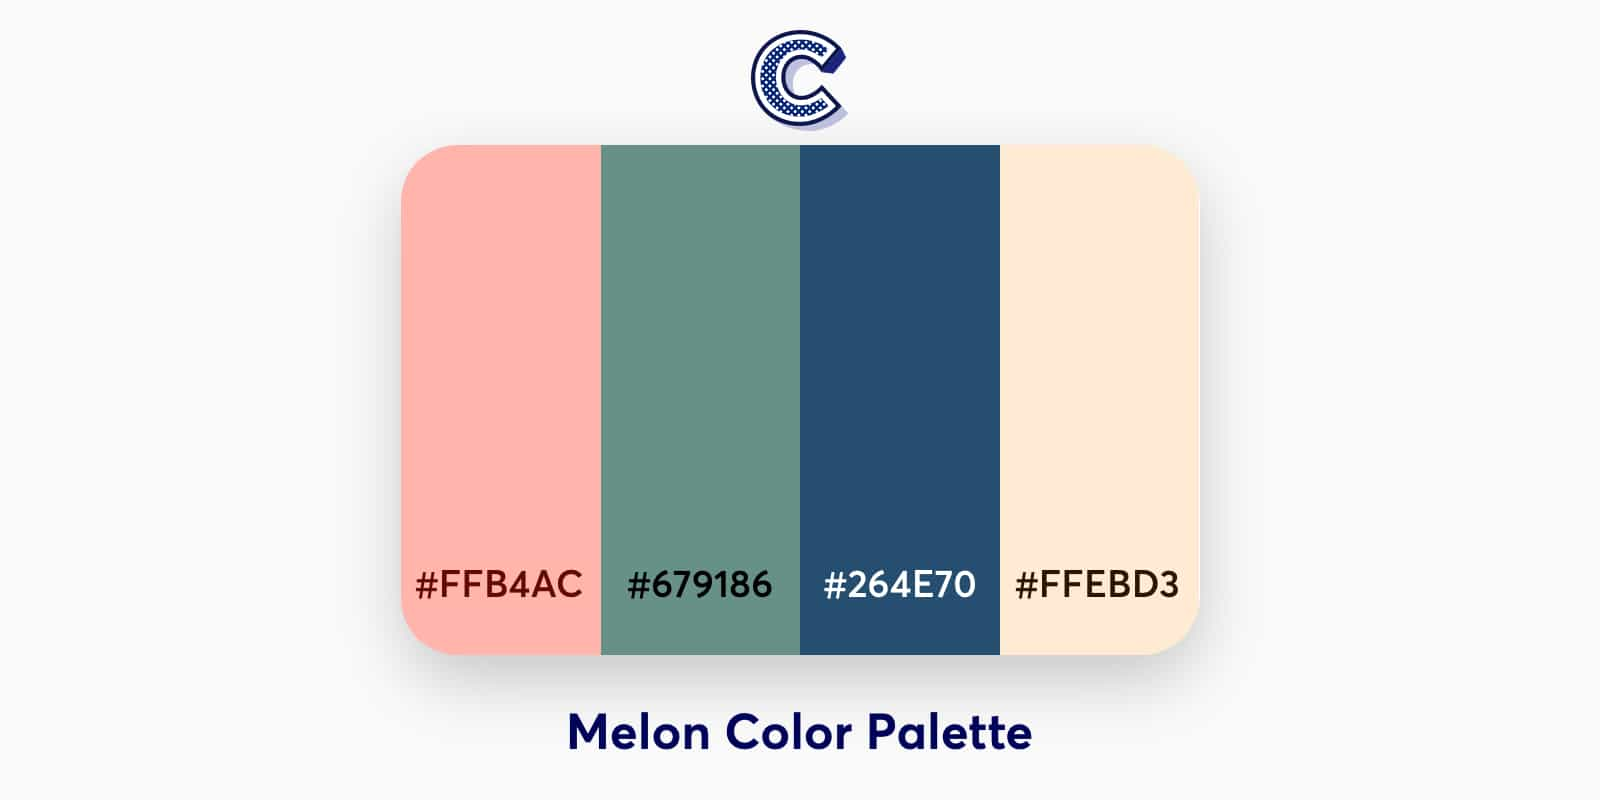 the featured image of melon color palette